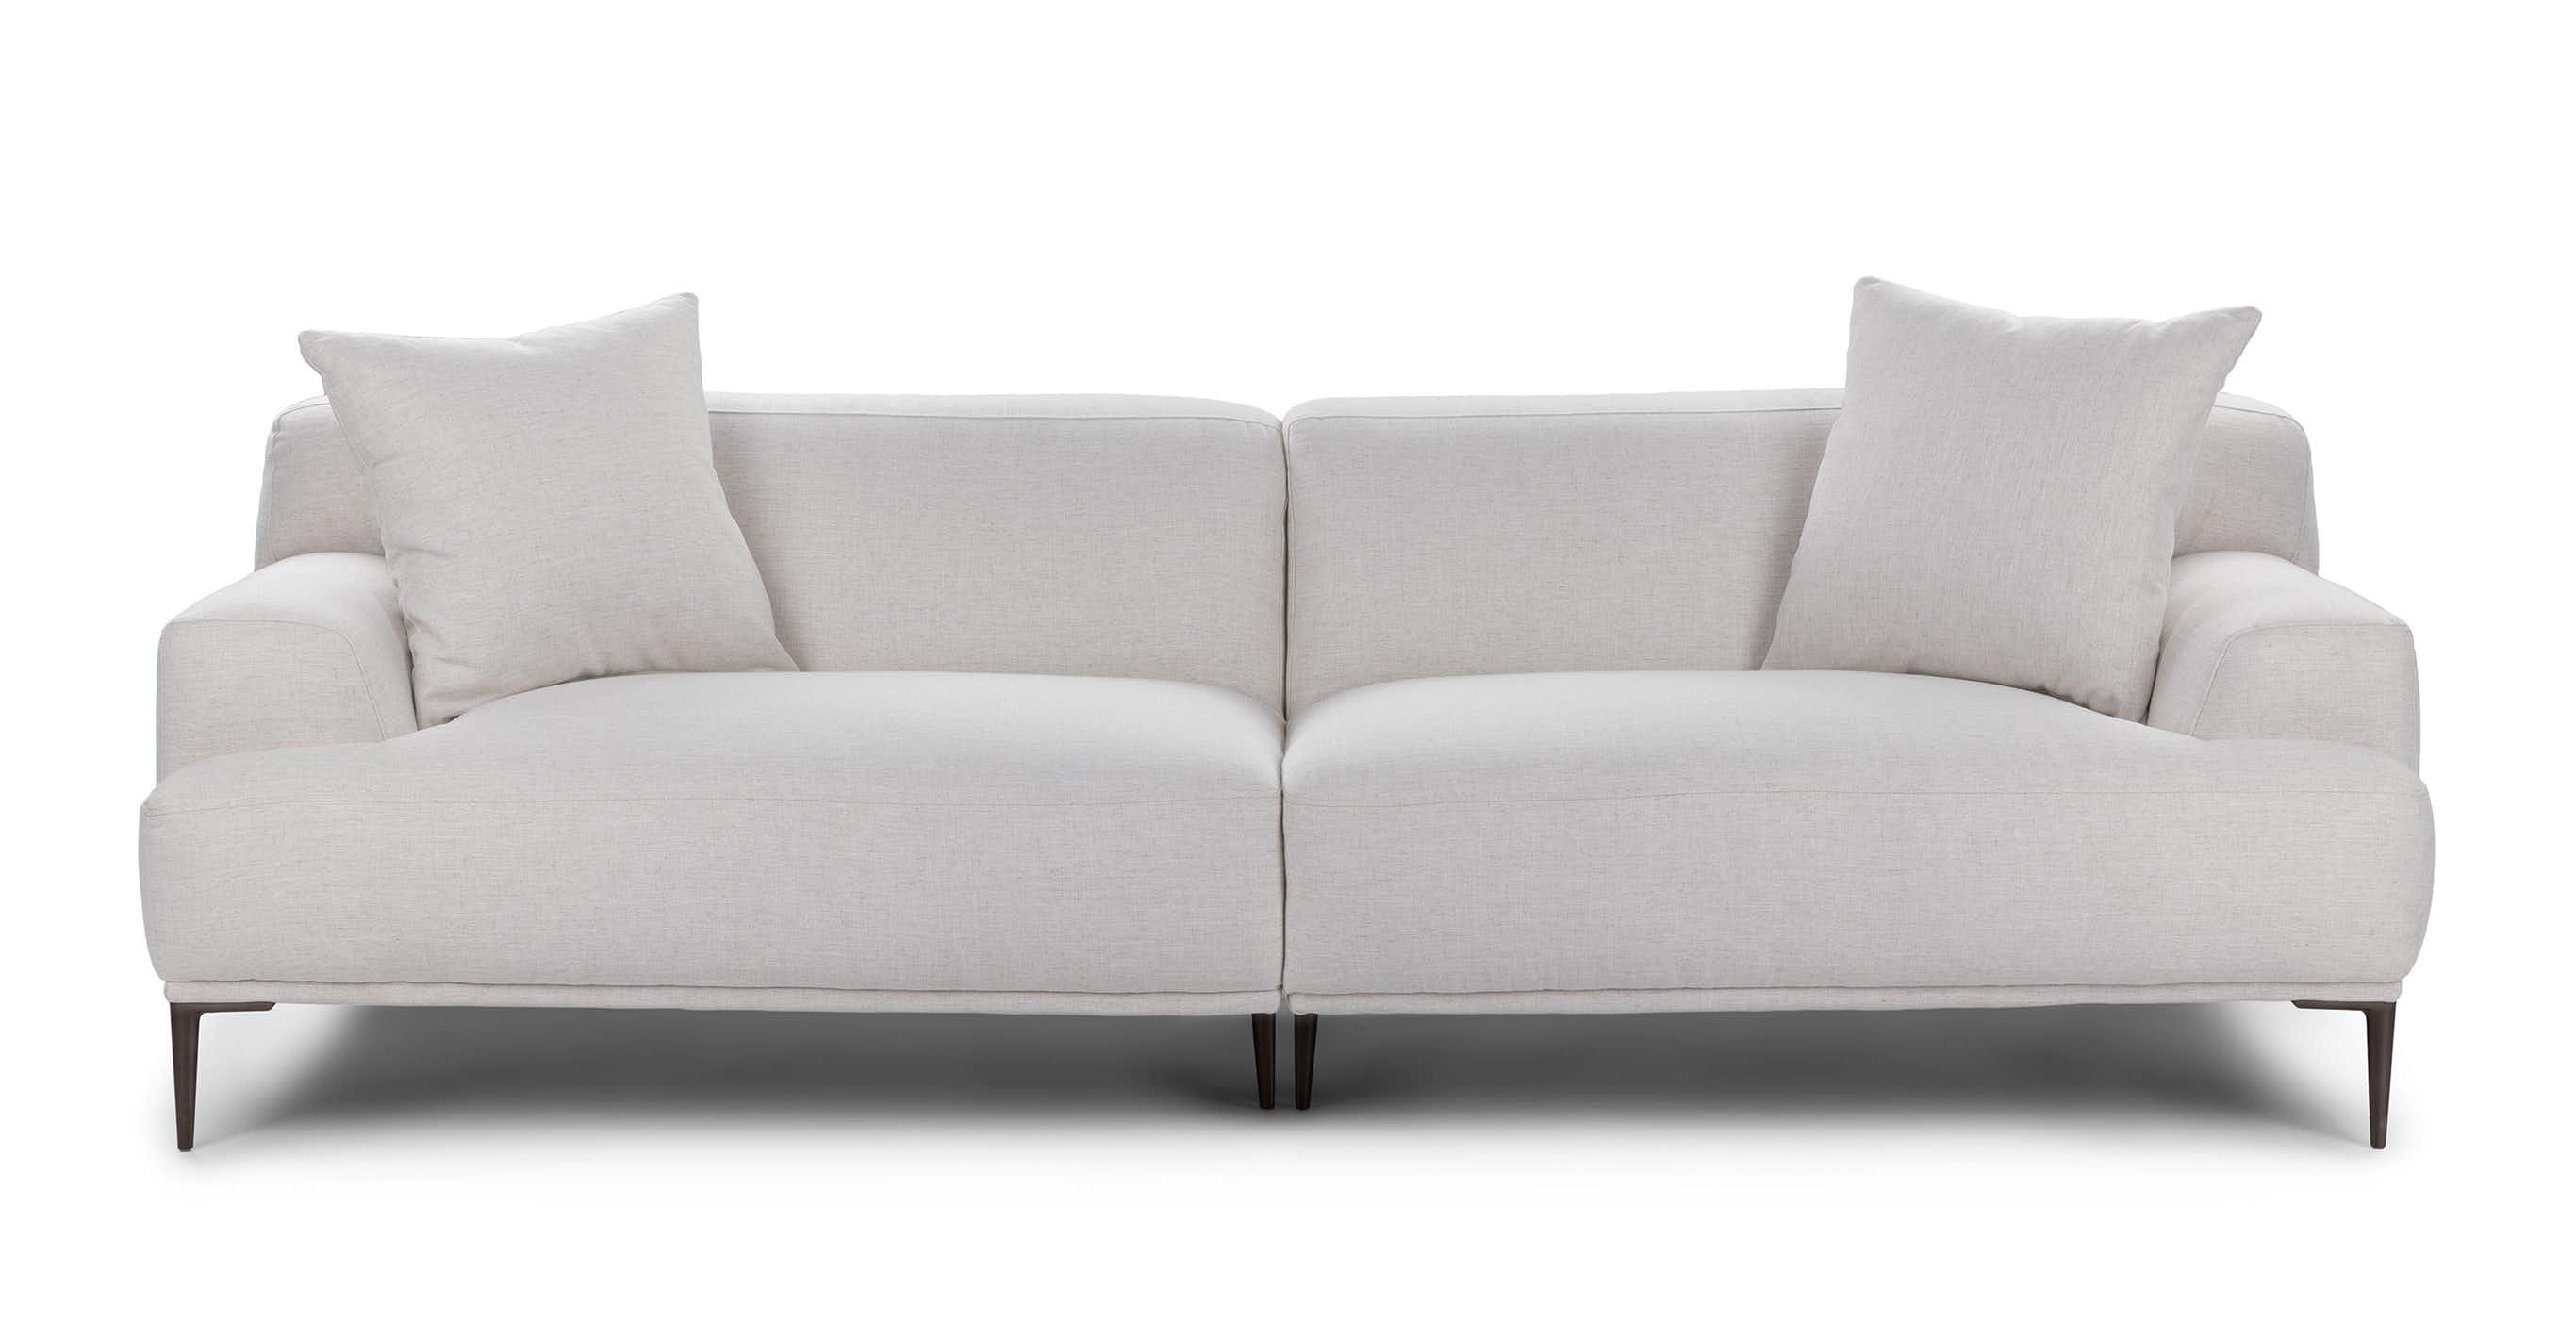 Abisko Mist Gray Sofa Modern Sofa Couch Contemporary Decor Living Room Mid Century Modern Sofa